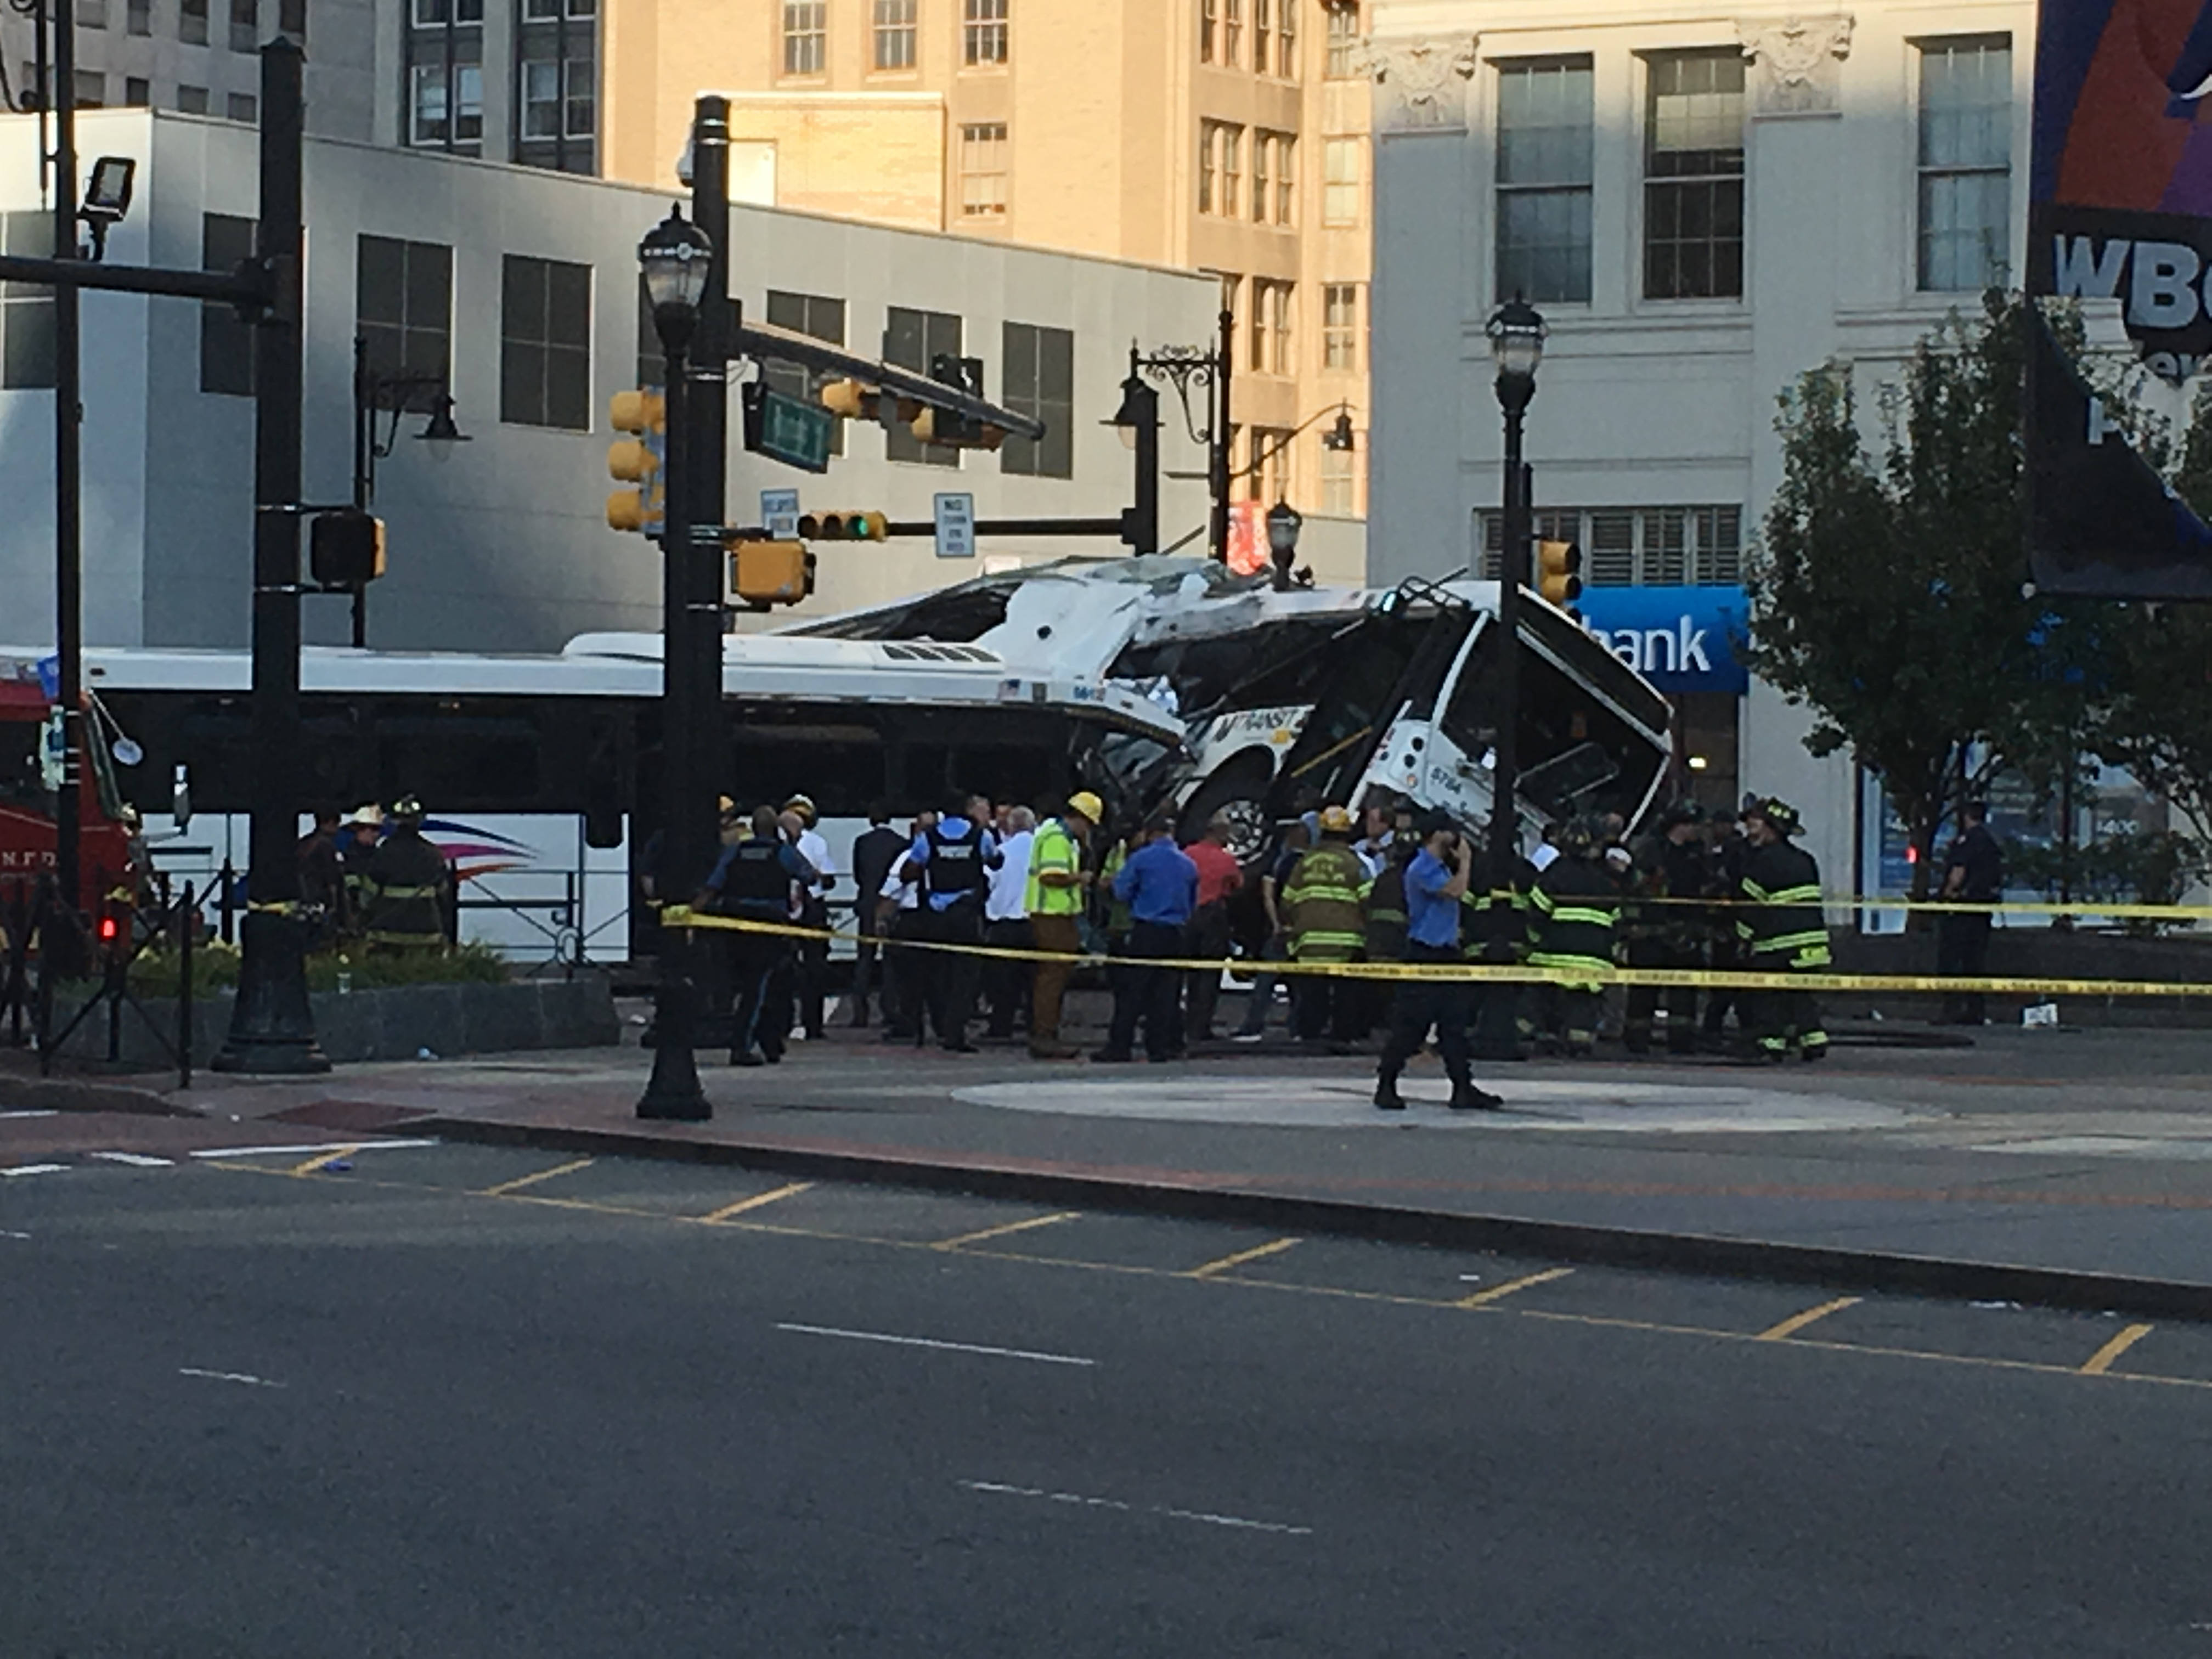 6c31a5ed1549bd966795_bus_crash_3.jpg